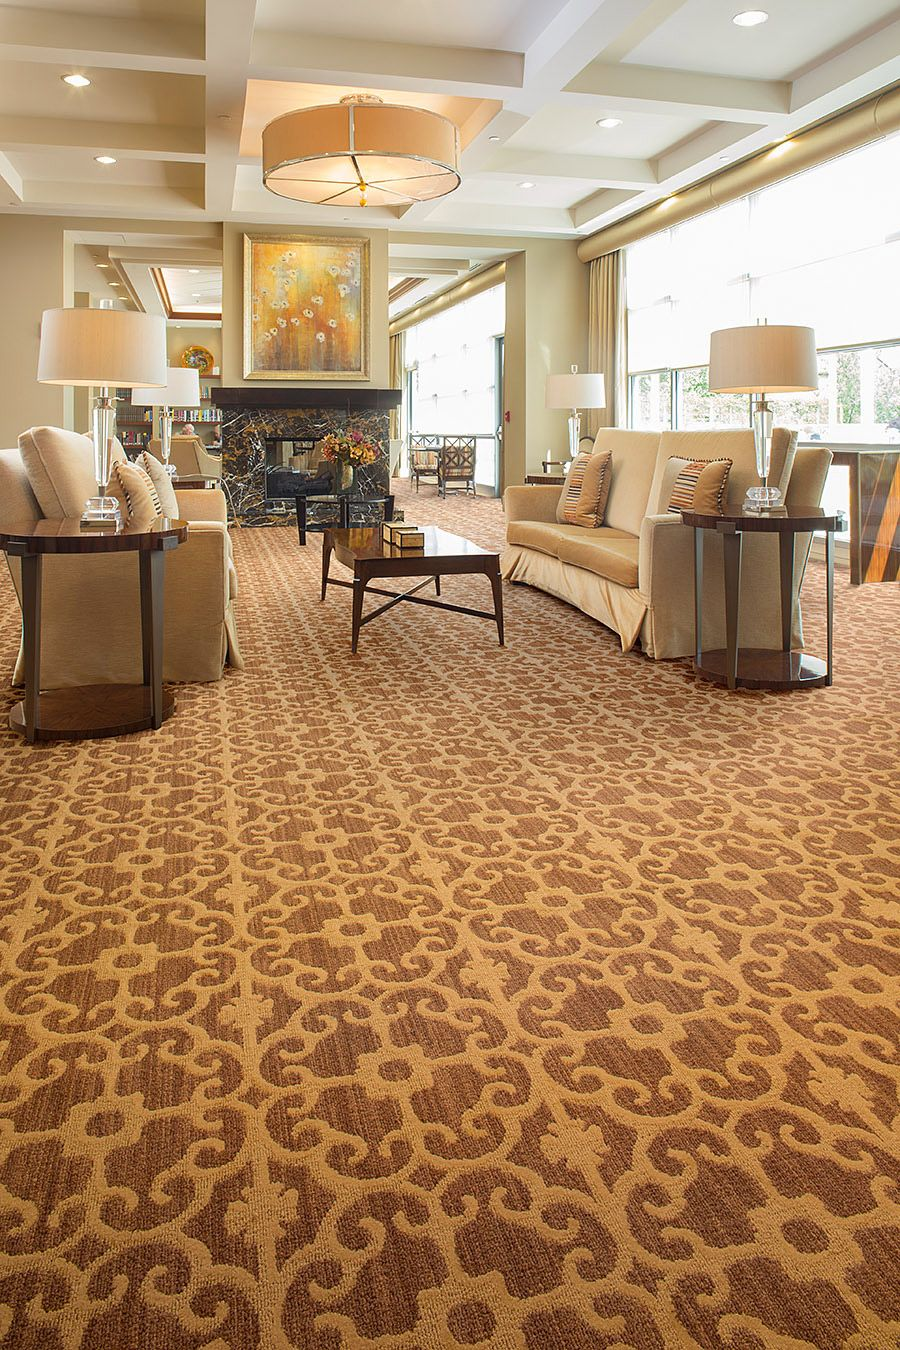 This Comes In A Few Colors But I Think The Pattern Might Be Too Wide For The Stairs Ornate Metal Lees Commer Carpet Tiles Home Depot Carpet Patterned Carpet